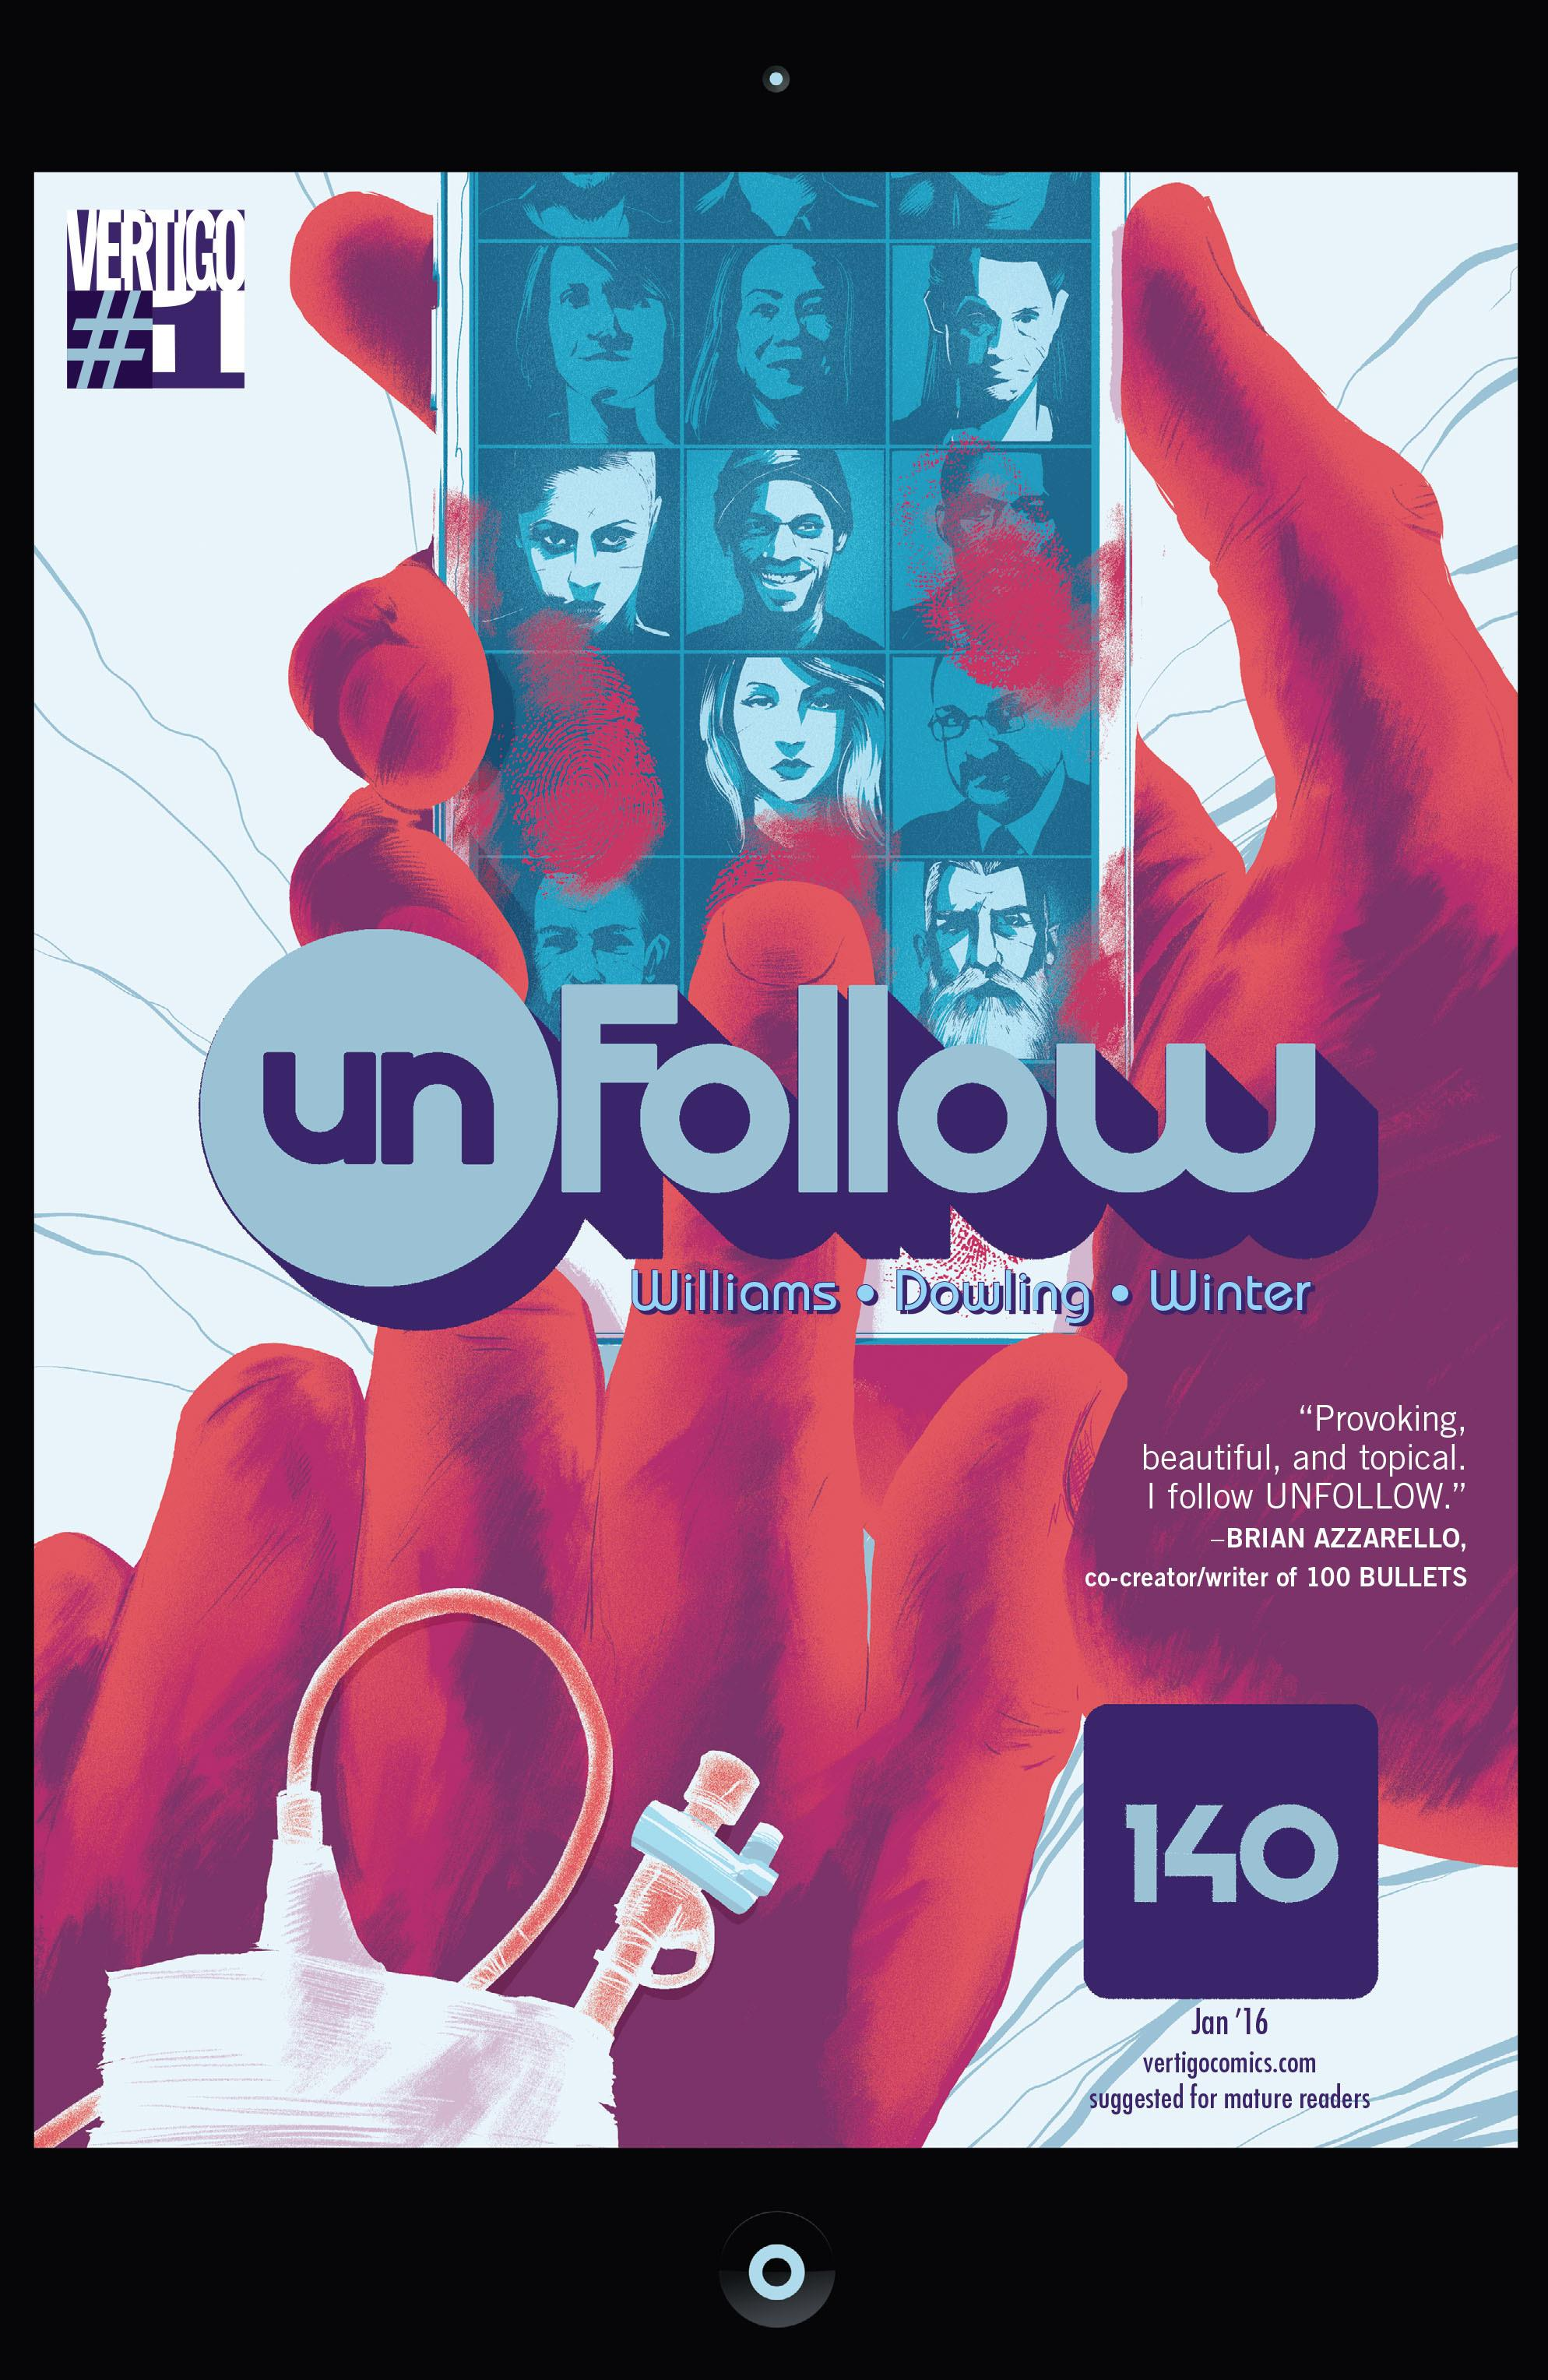 COMIC REVIEW: Unfollow #1 - A Motley Crew